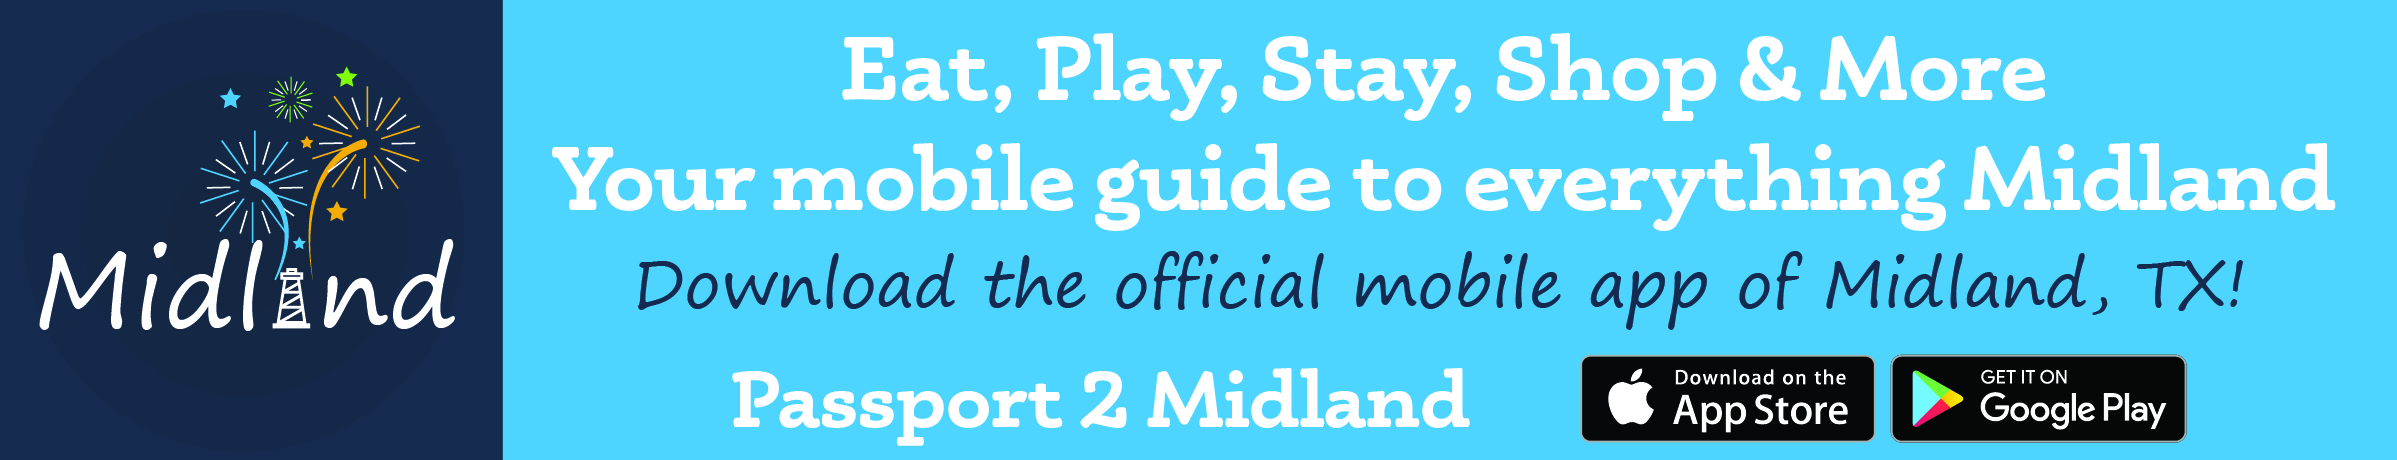 Download the Passport 2 Midland App